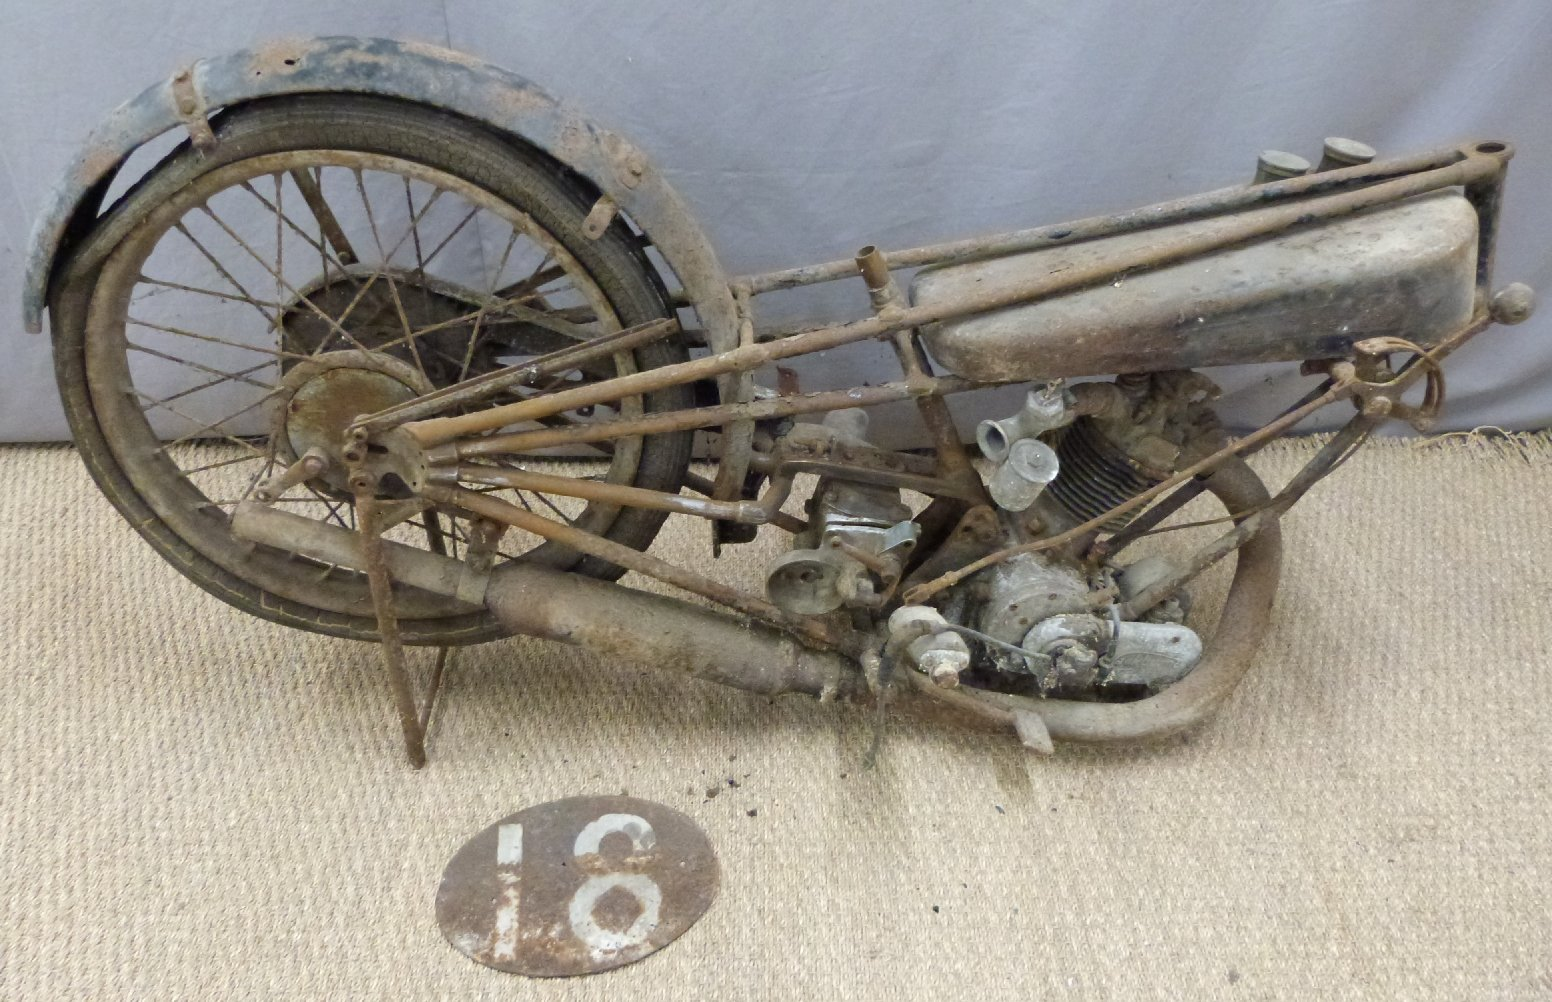 1927 Cotton 350cc OHV works racing motorcycle For Sale by Auction (picture 1 of 6)